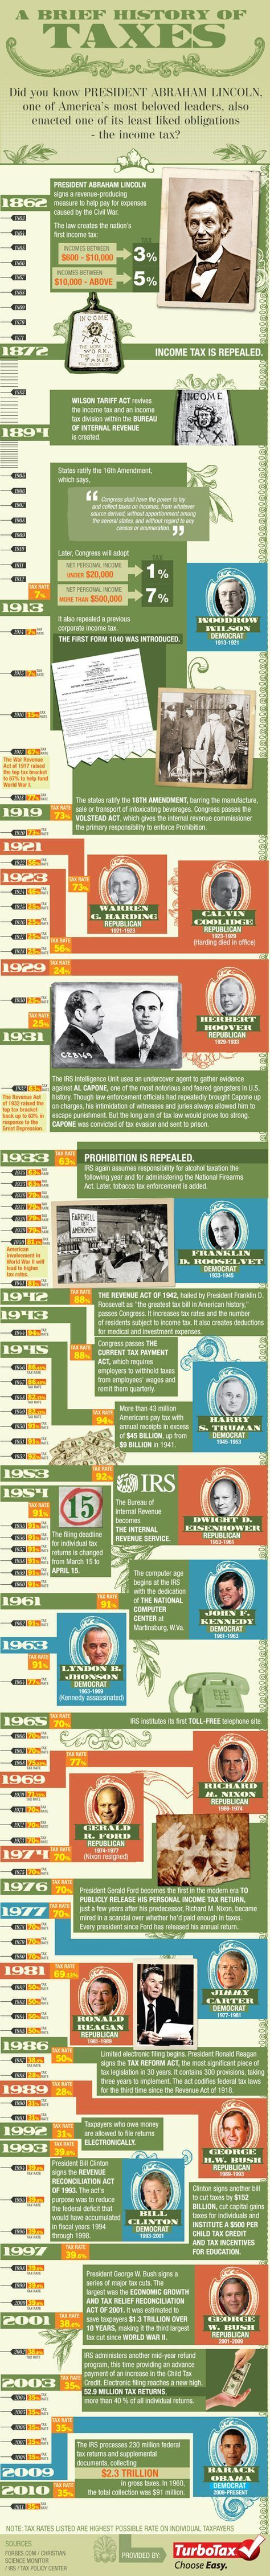 A Brief History Of Income Taxes [Infographic]